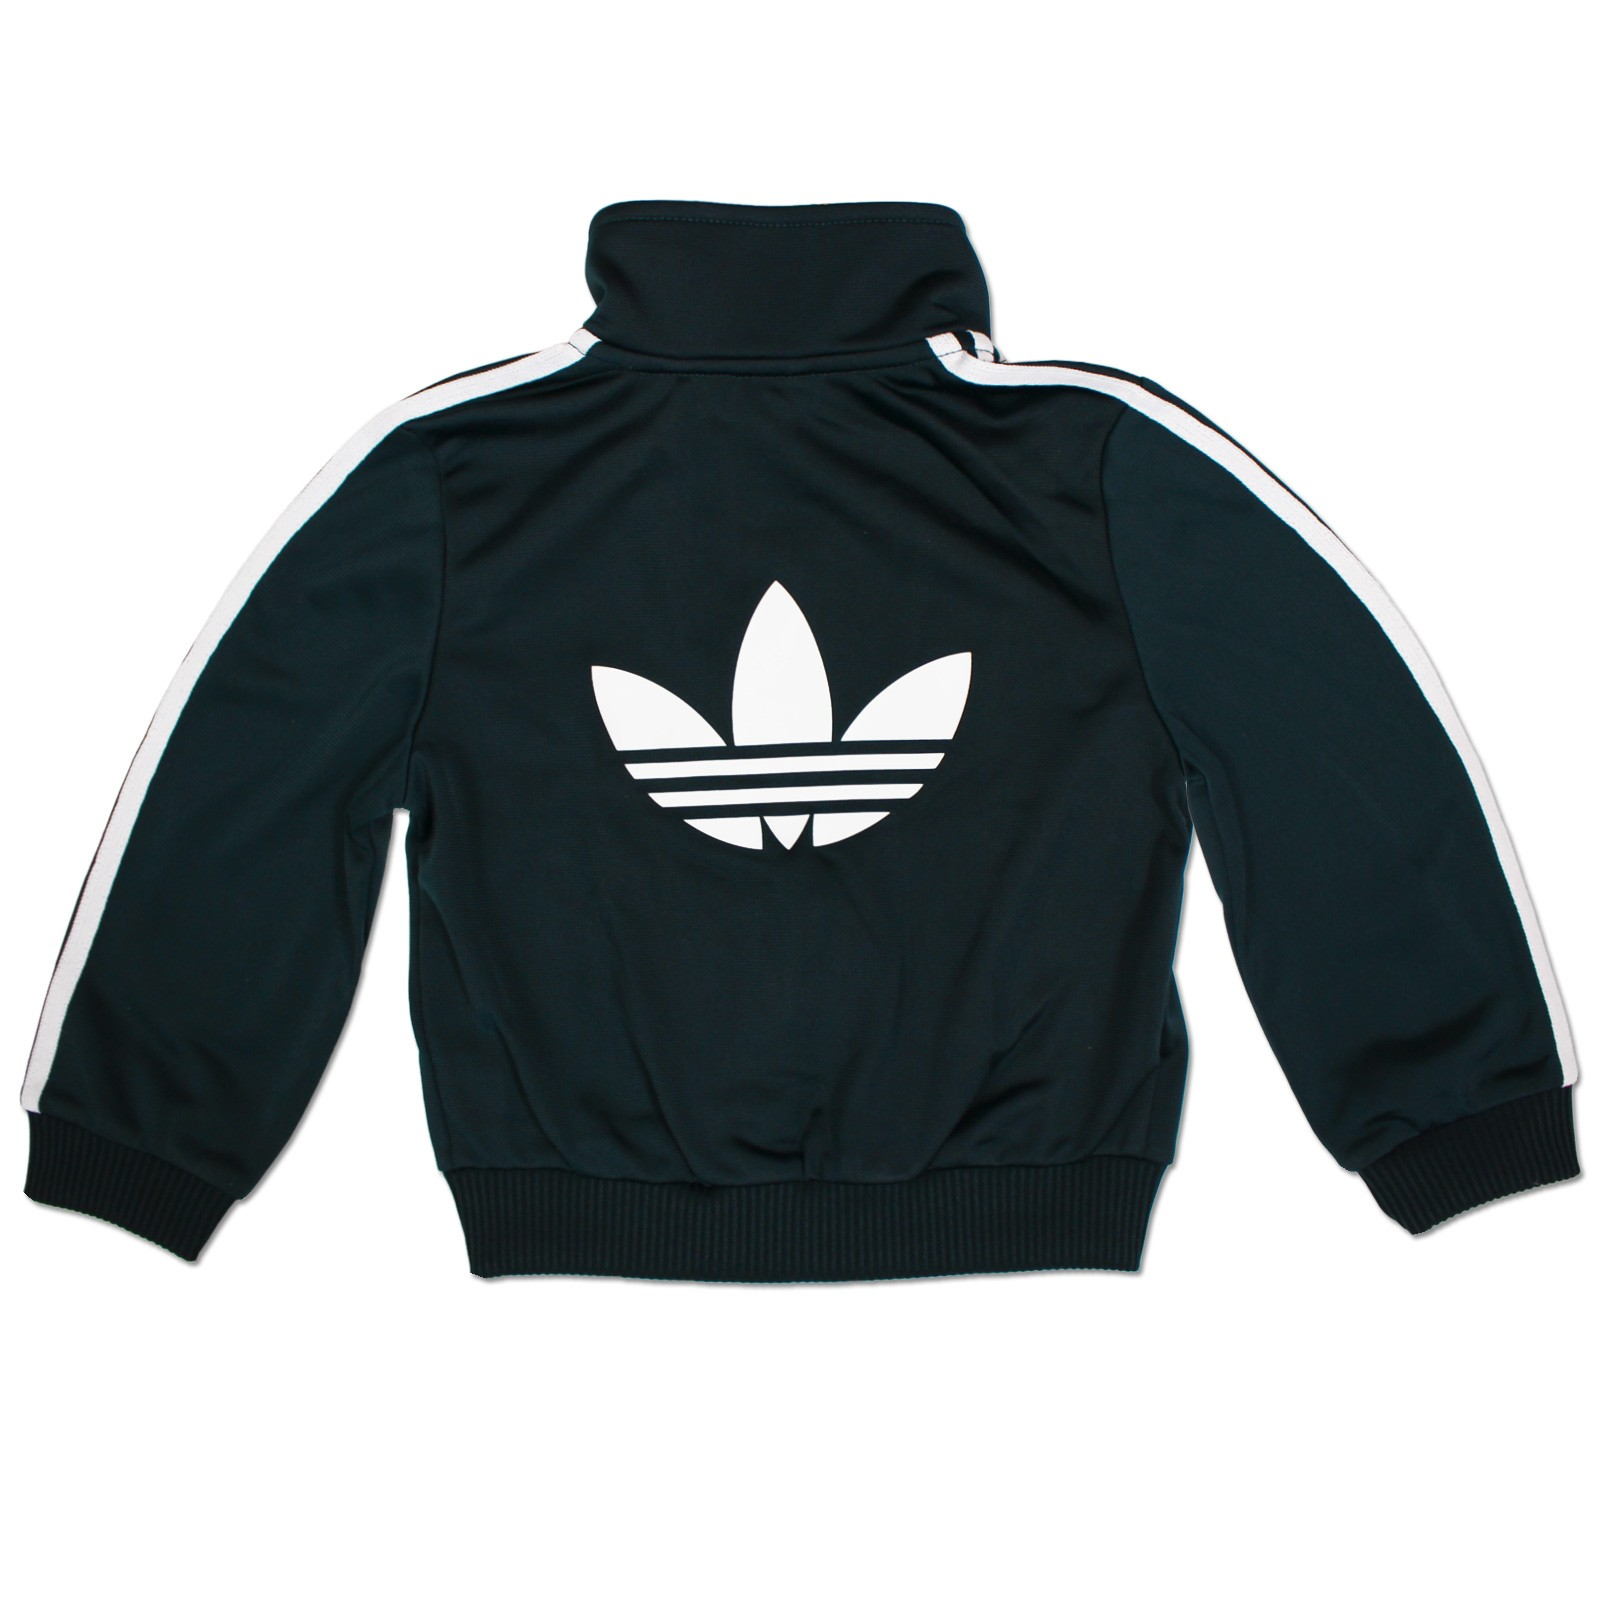 adidas originals firebird kinder jogger trainingsanzug sport anzug jacke navy kinder jogger. Black Bedroom Furniture Sets. Home Design Ideas